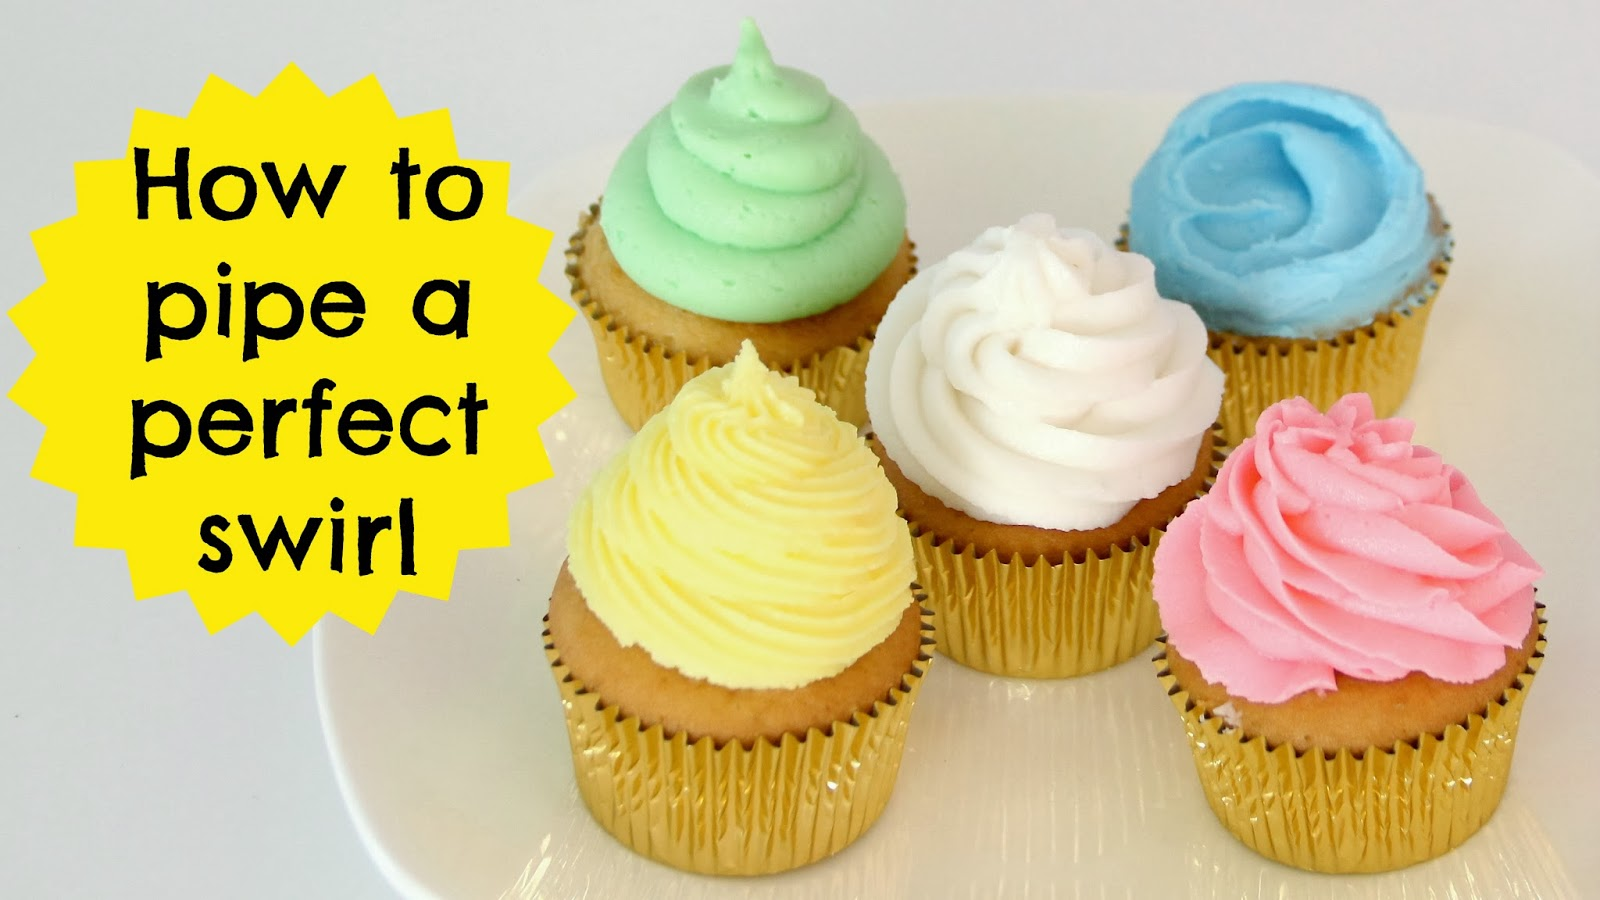 http://blog.dollhousebakeshoppe.com/2014/02/video-how-to-pipe-perfect-cupcake-swirl.html